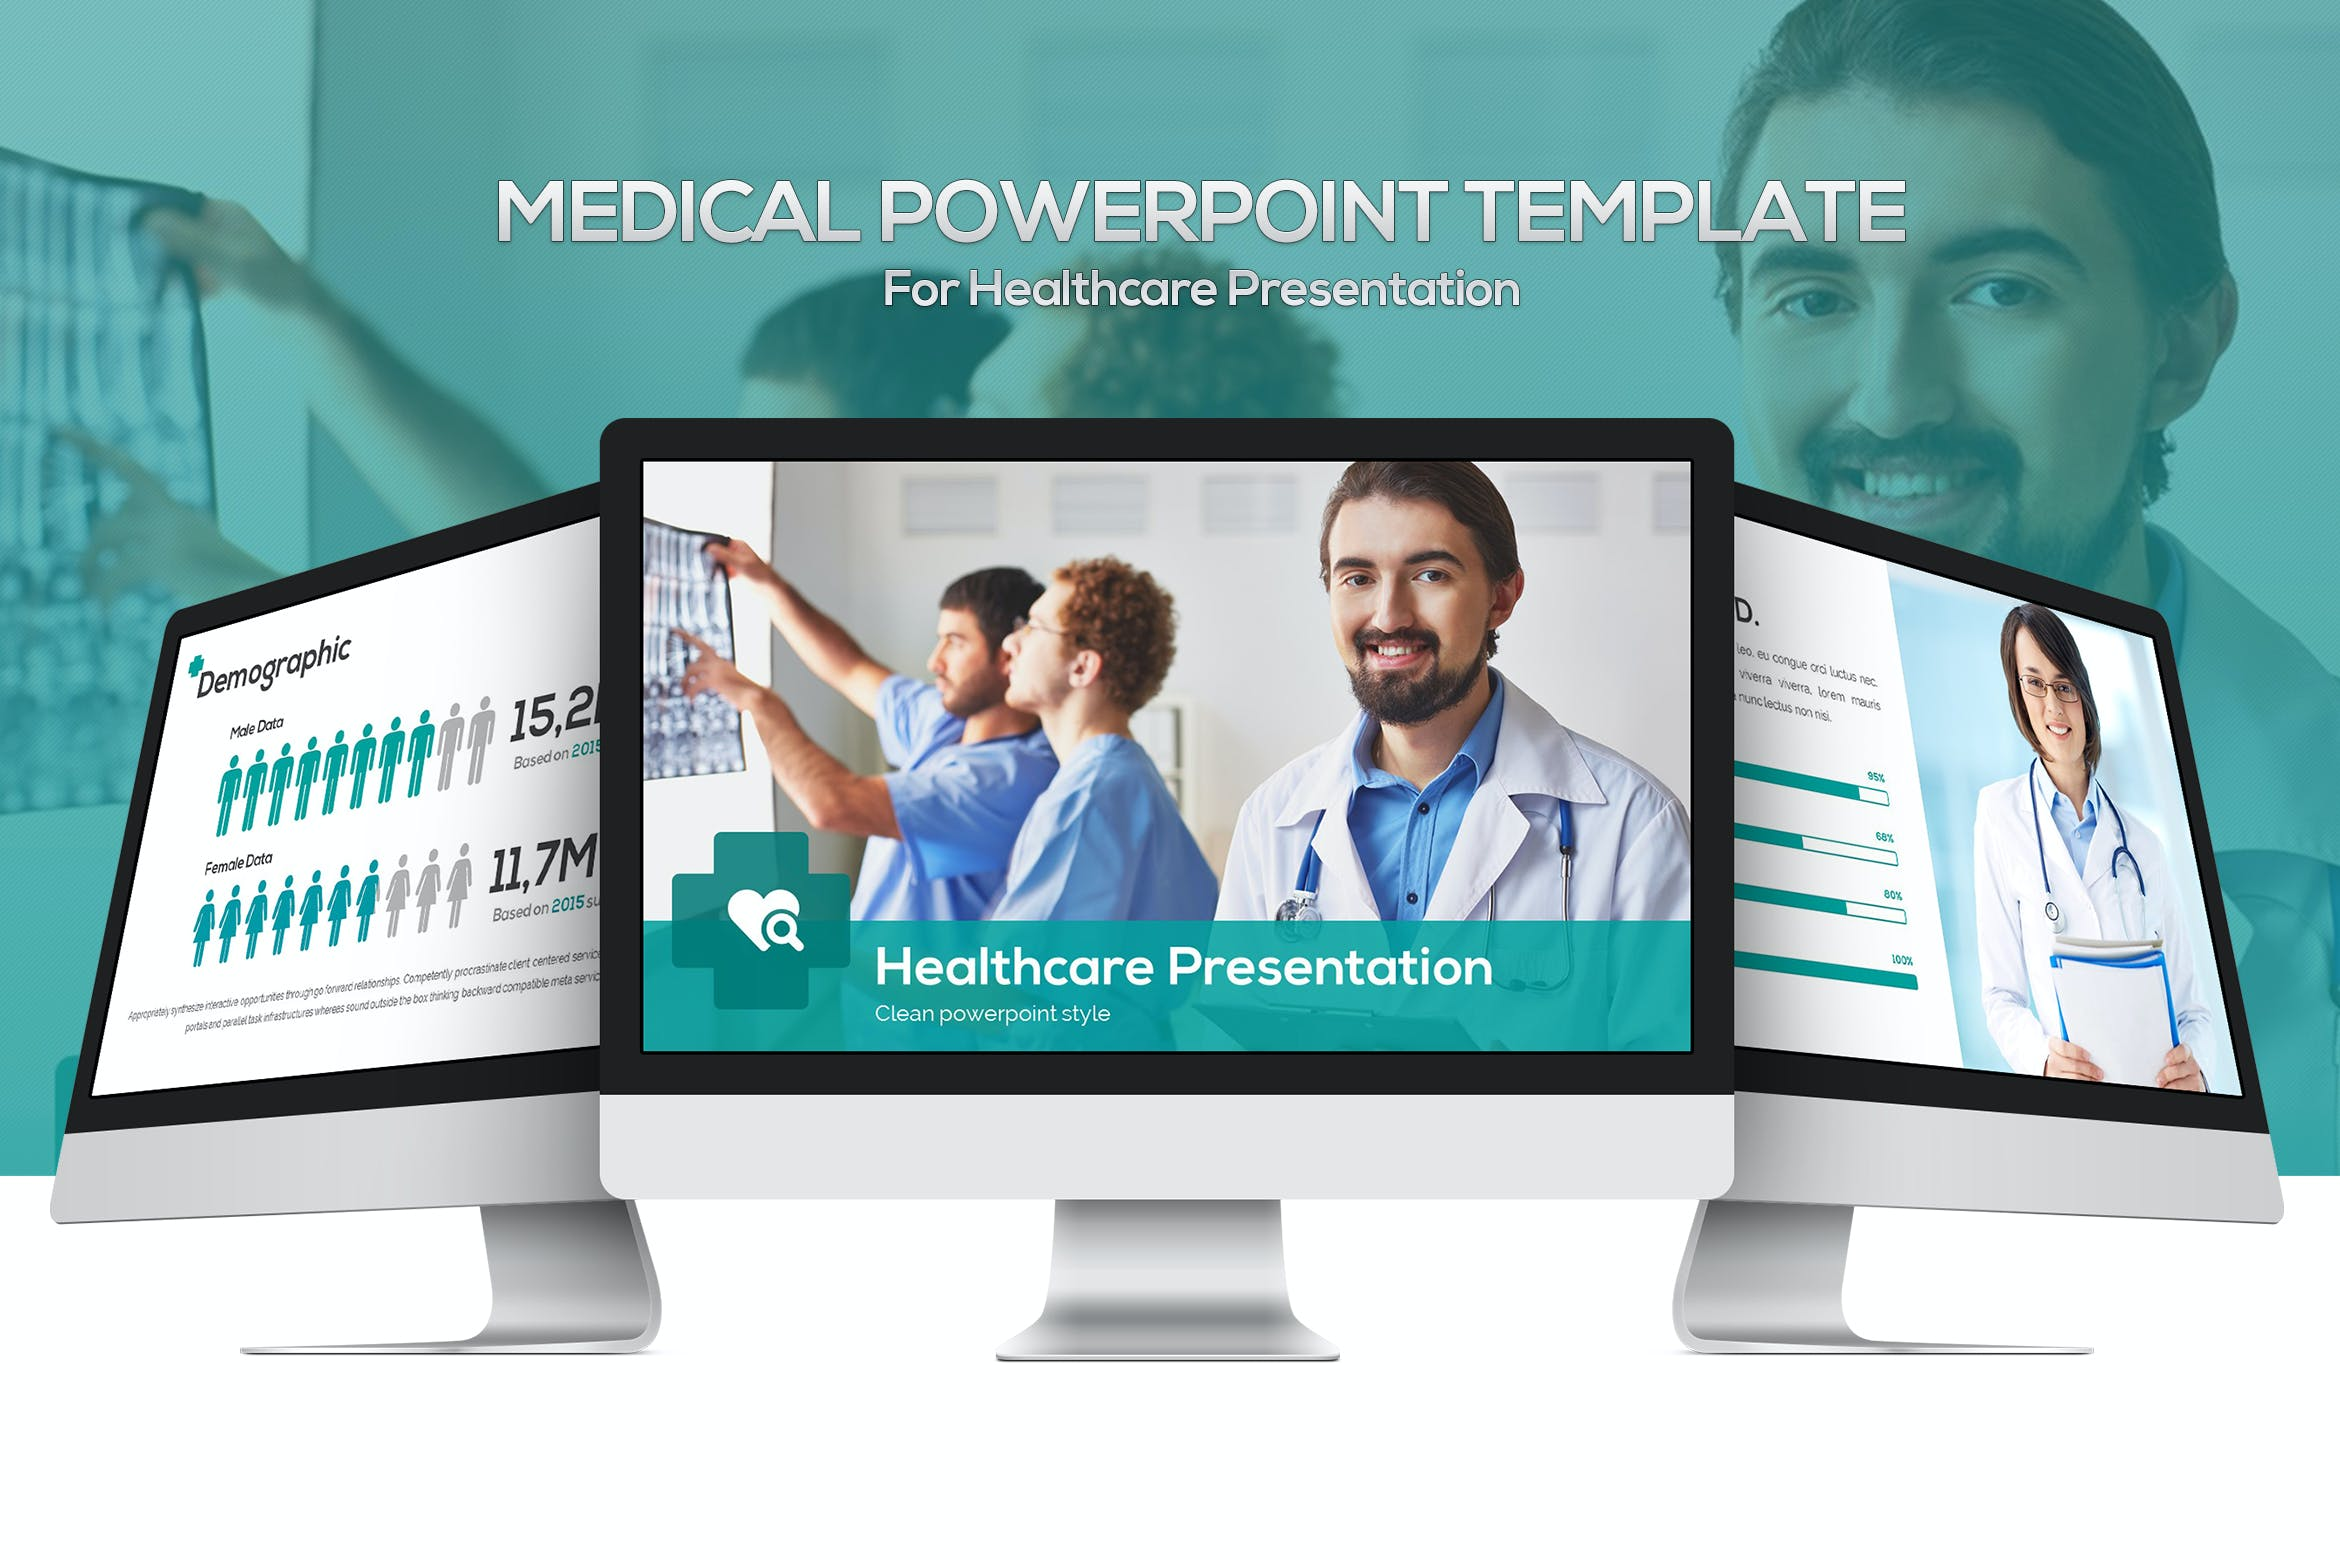 Medical Powerpoint Template By Slidefactory On Envato Elements